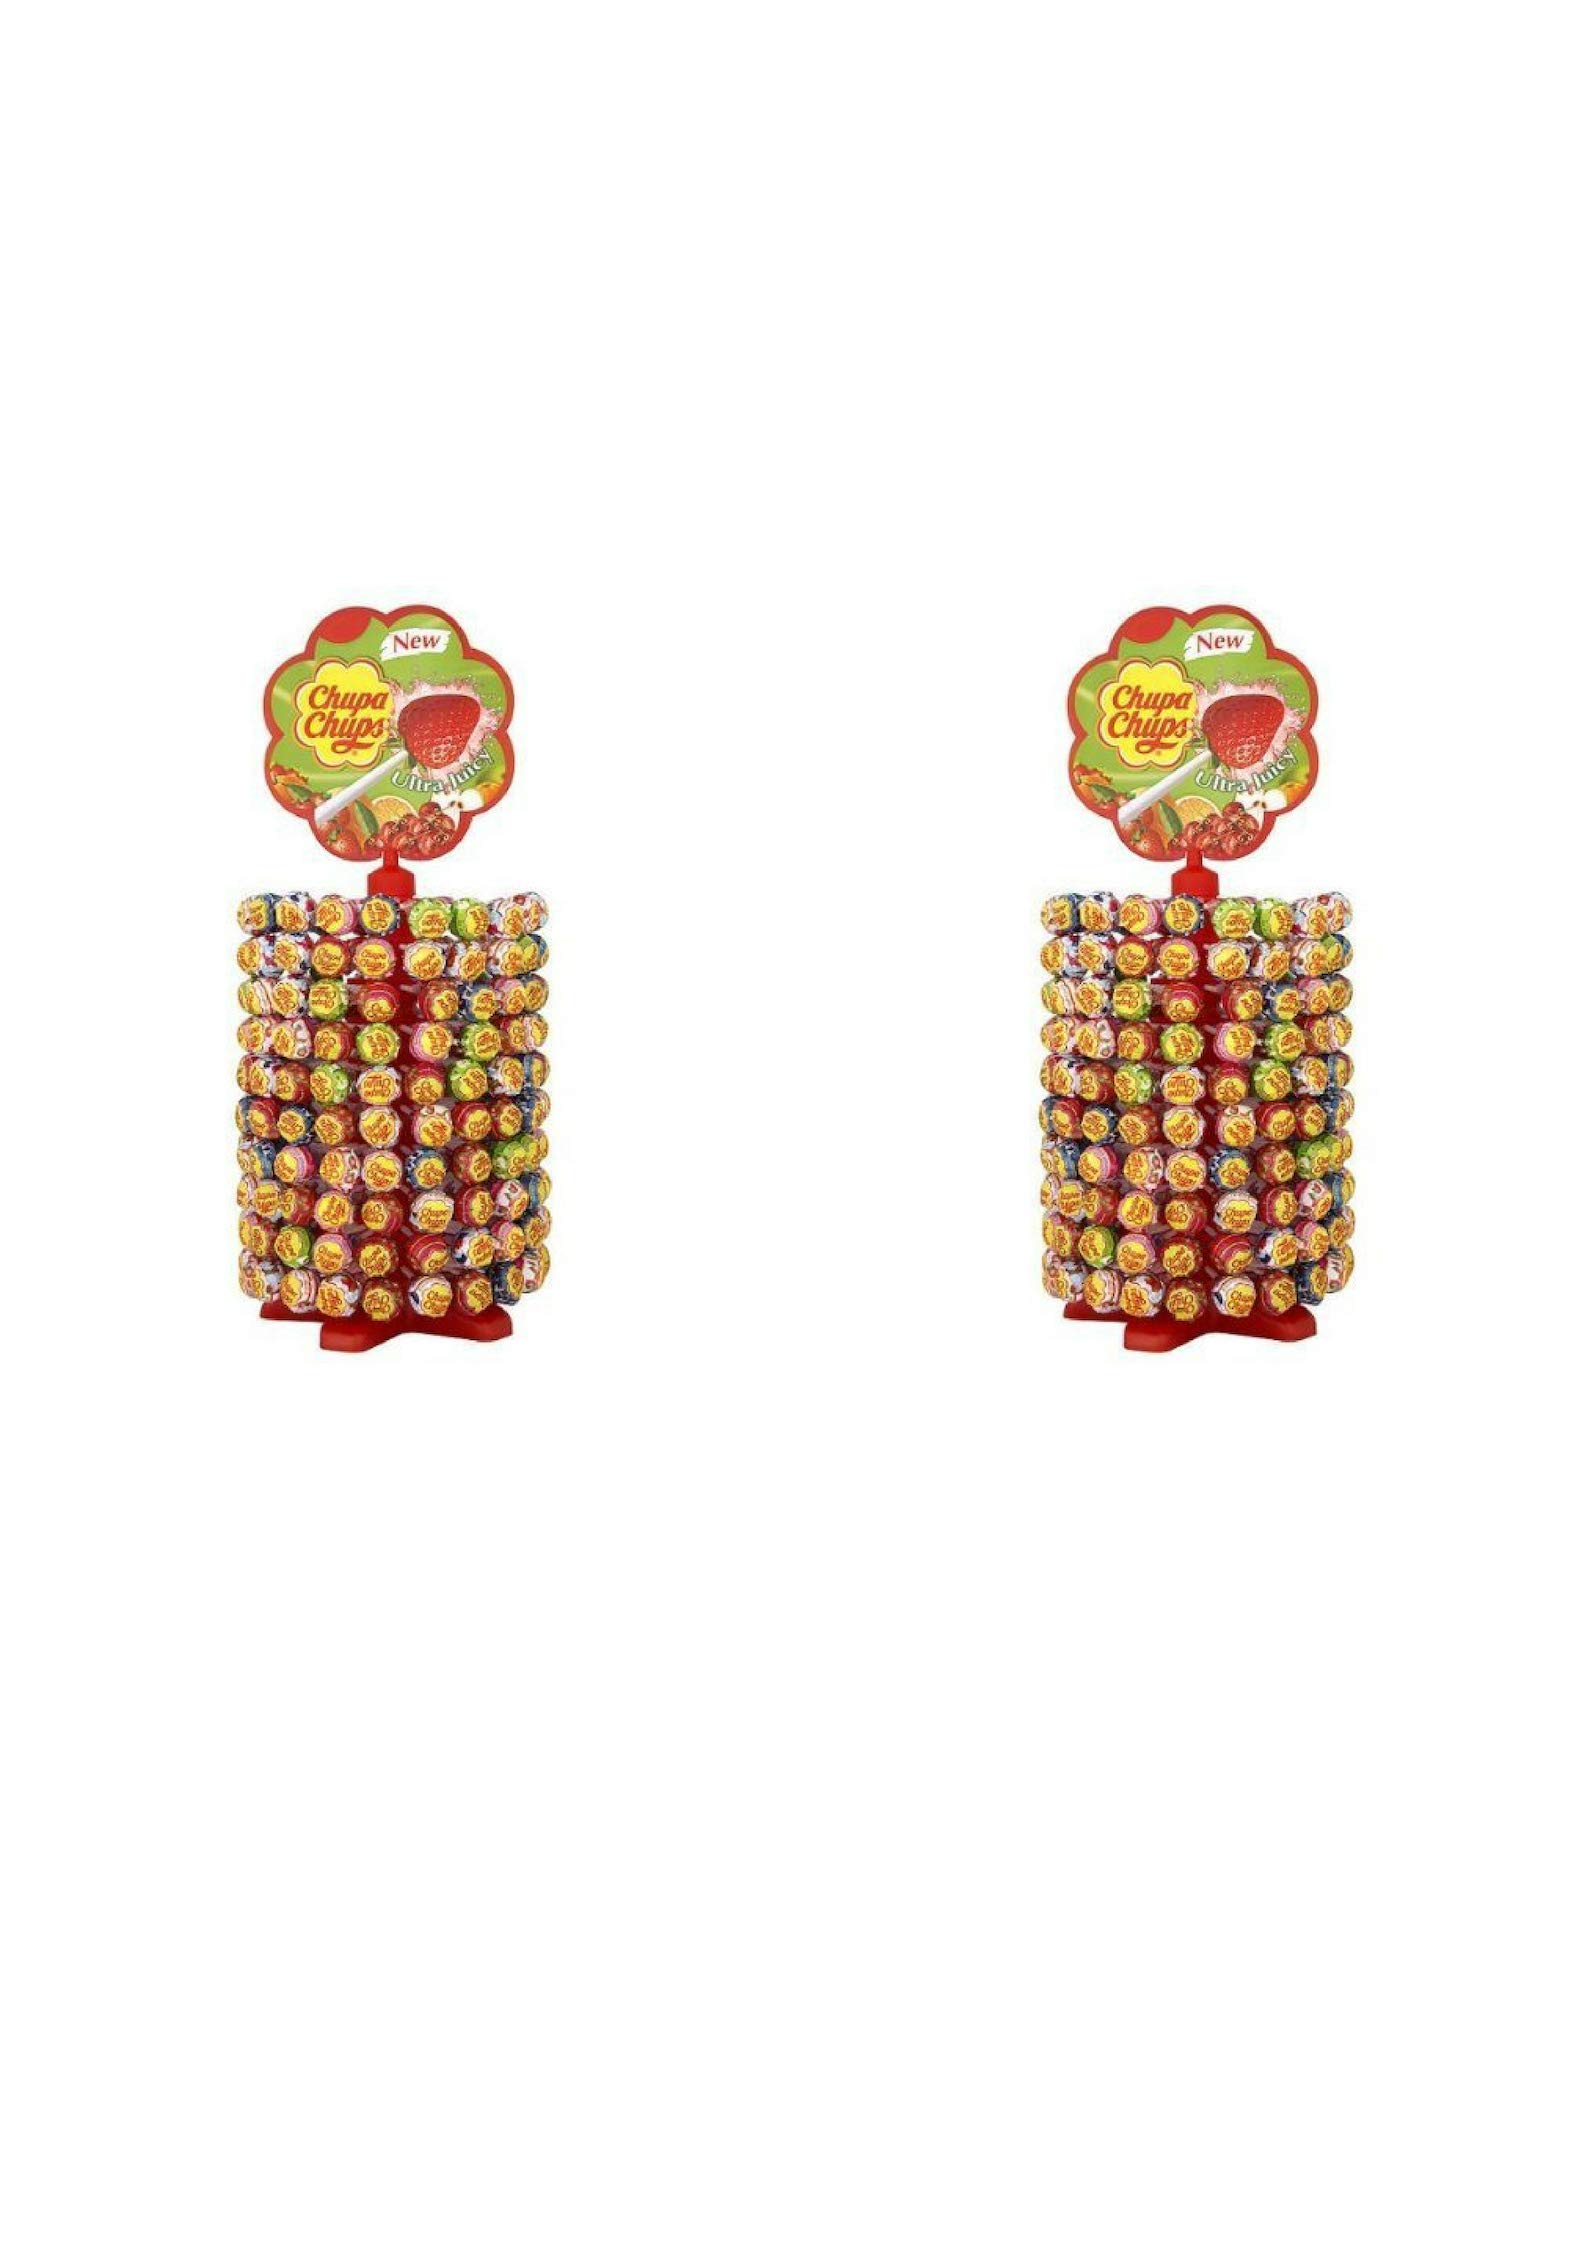 Chupa Chups Display with 200 Assorted Lollipops (2 Pack)